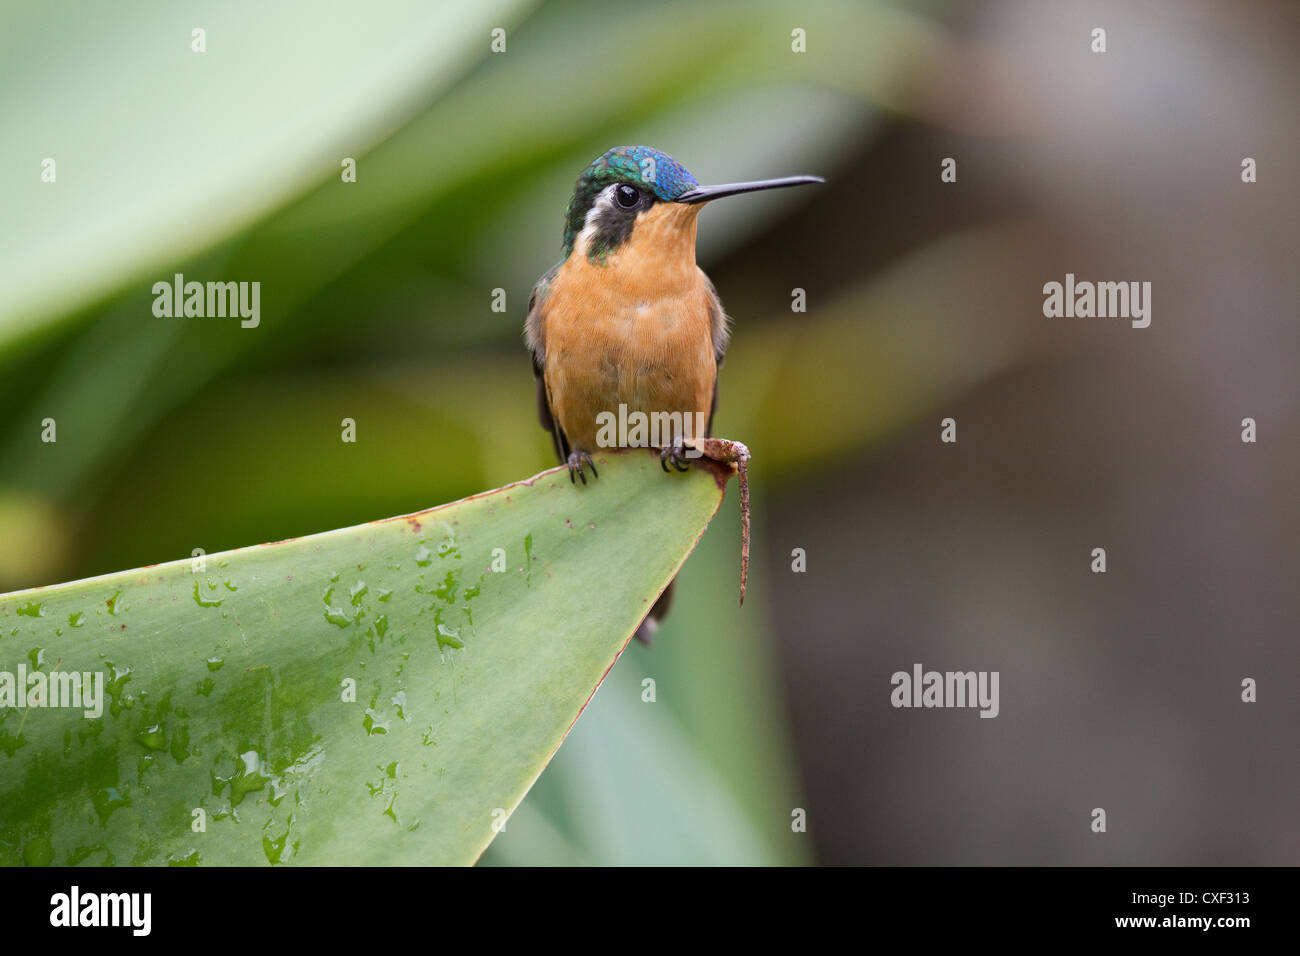 Female Purple-throated Mountain-gem (Lampornis calolaemus) perched on cactus at Savegre Mountain Lodge, Costa Rica. - Stock Image